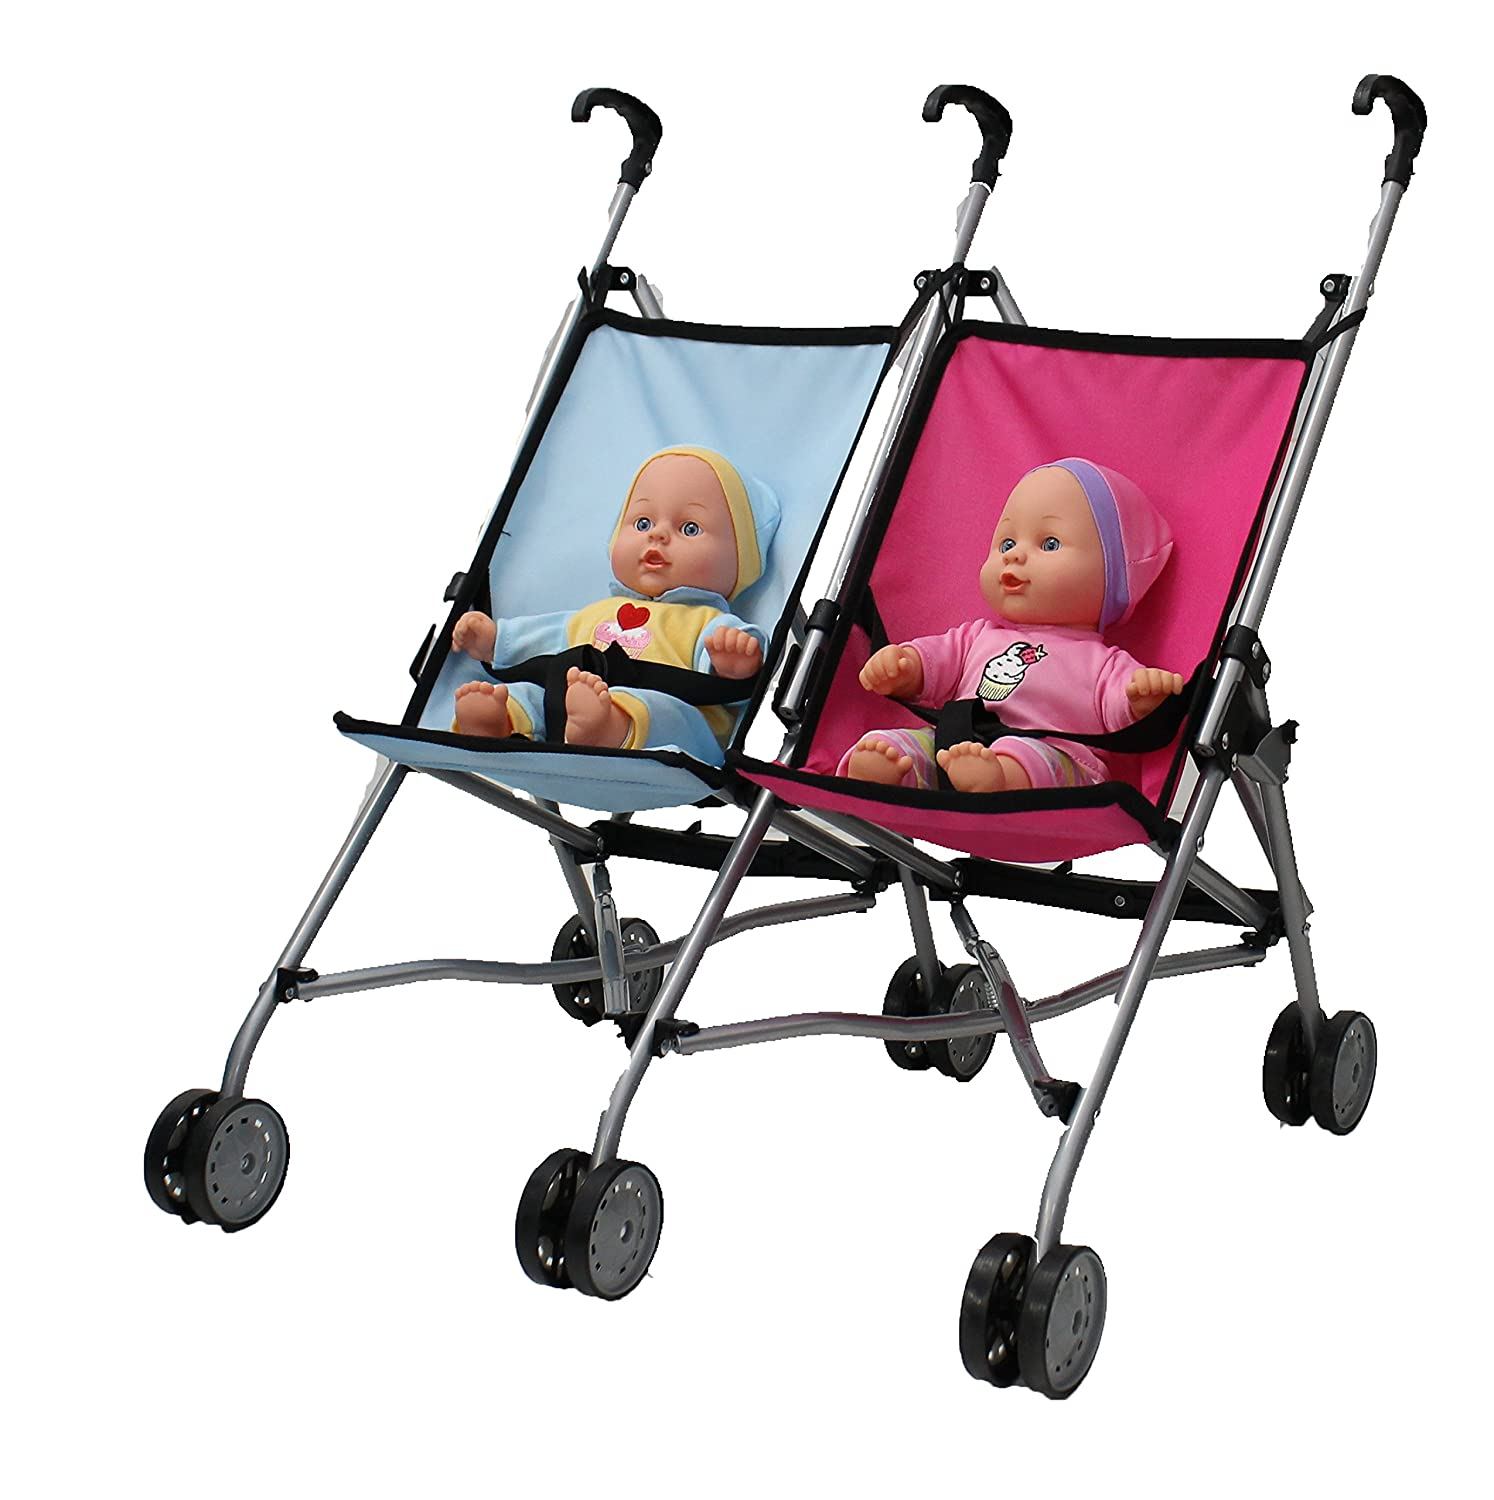 Mommy /& Me Twin Doll Stroller for 1 Boy Doll and 1 Girl Doll